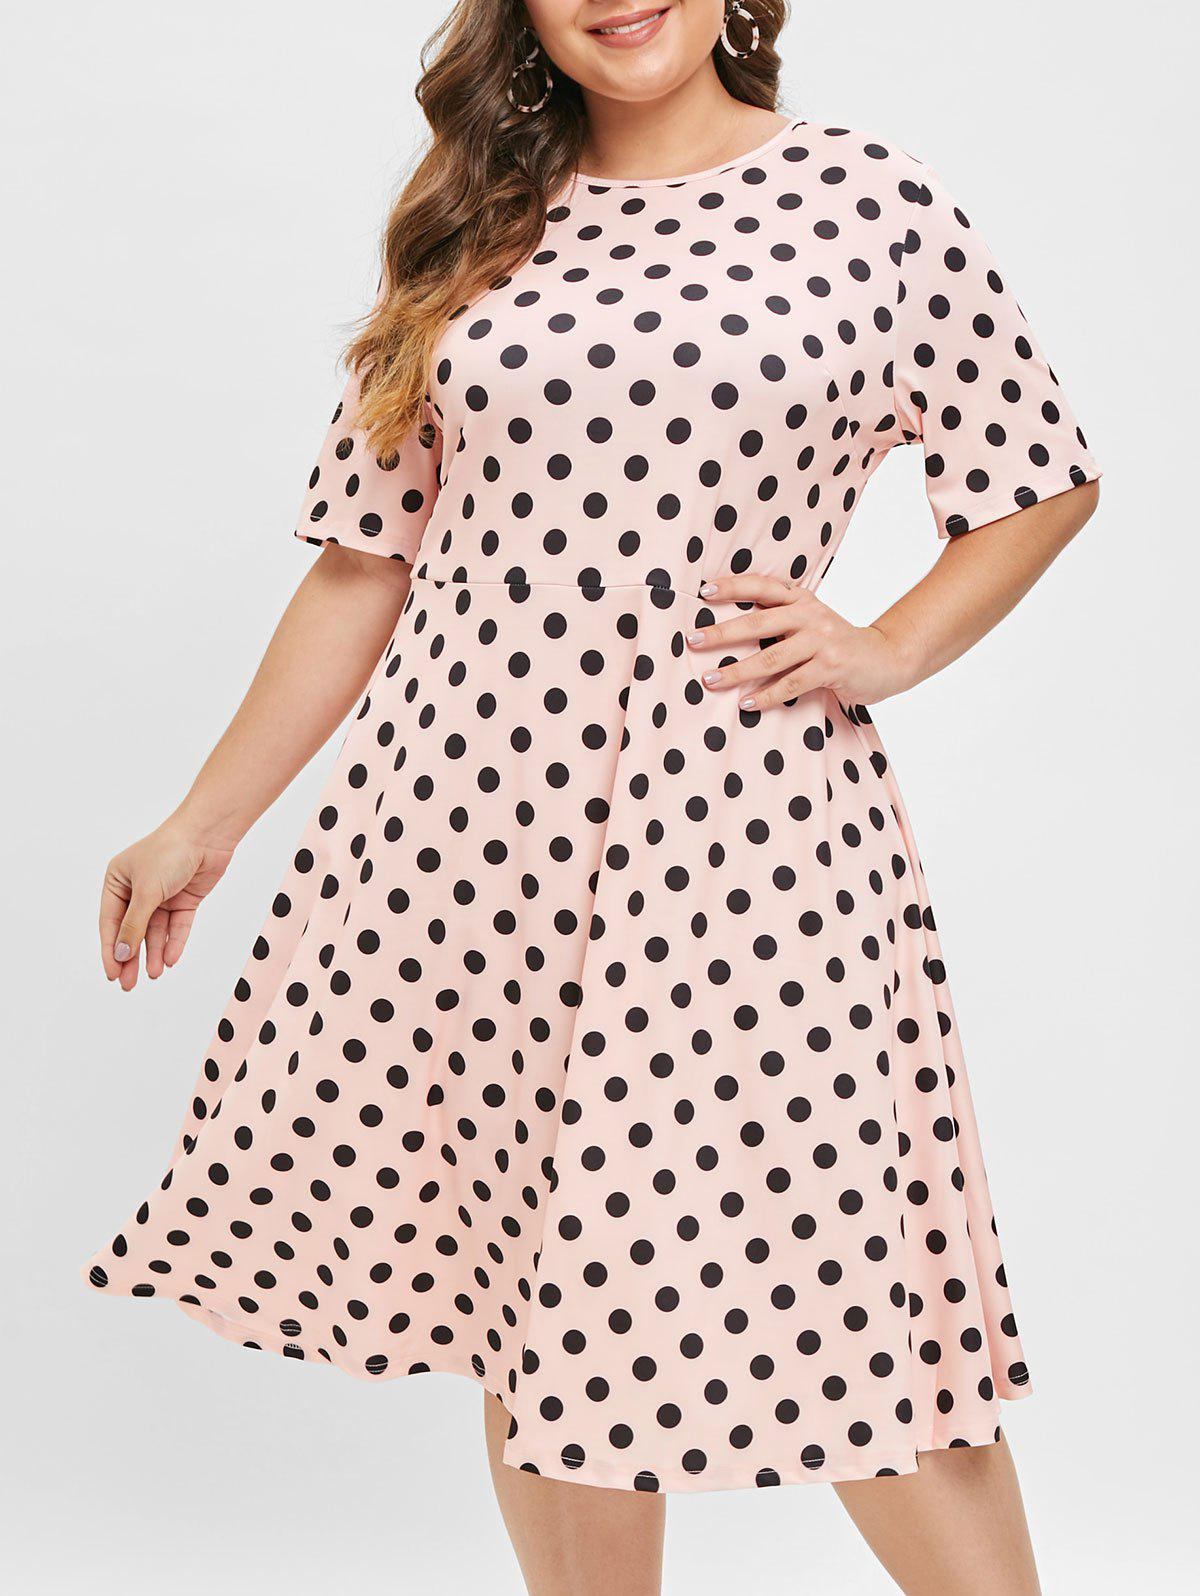 764d89c0ca 38% OFF] Polka Dot Plus Size Round Neck A Line Dress | Rosegal